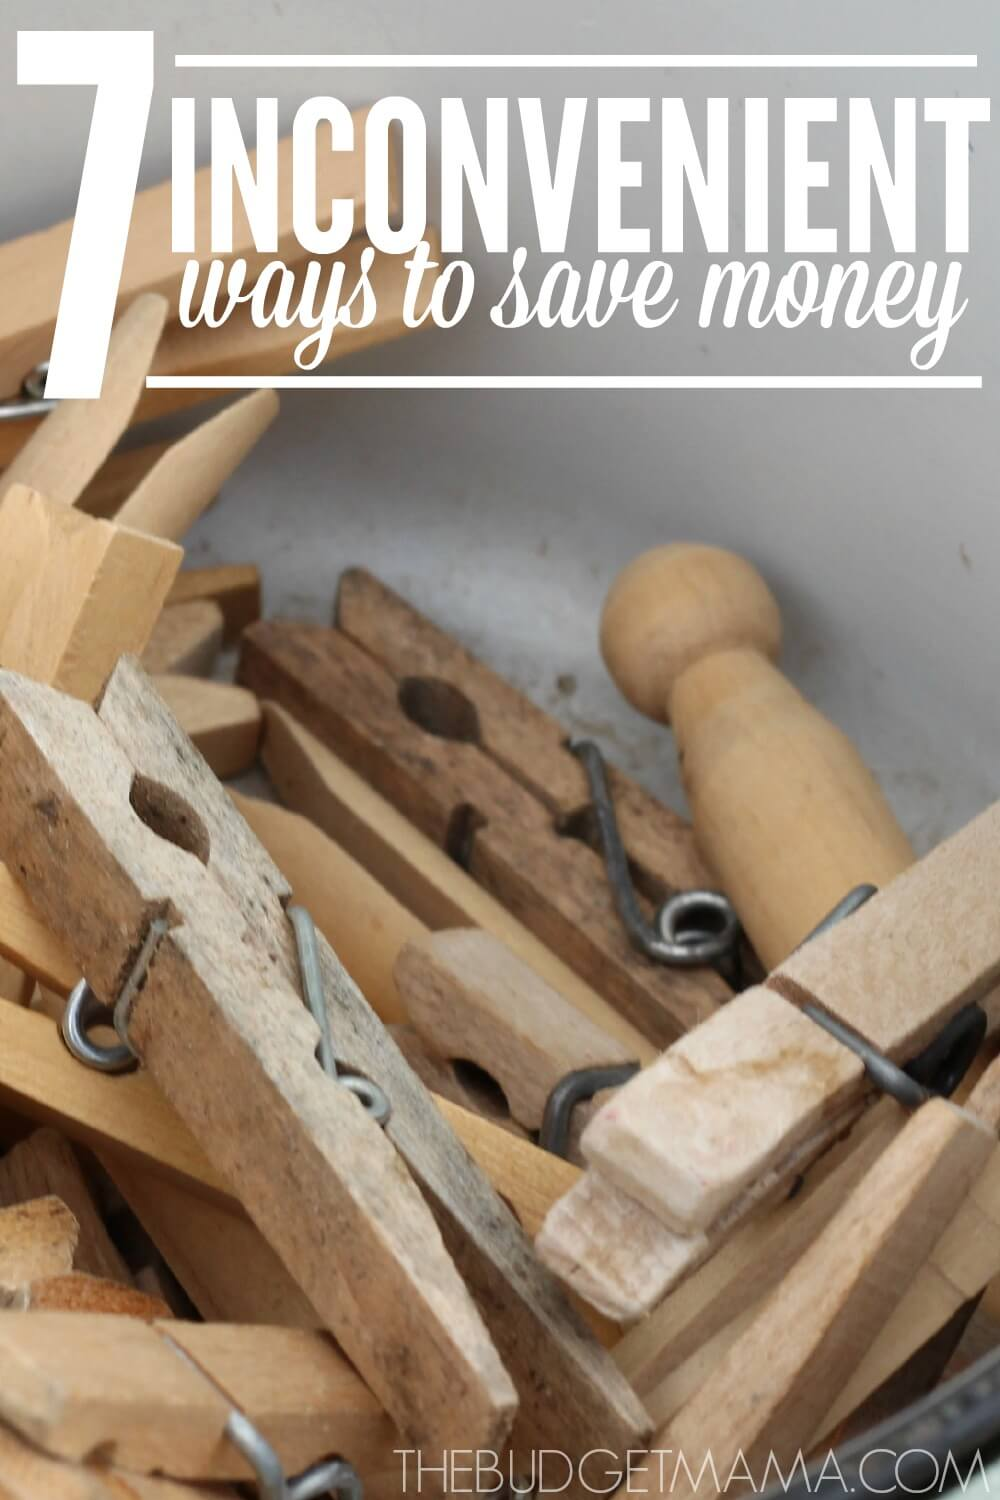 7 Inconvenient Ways to Save Money